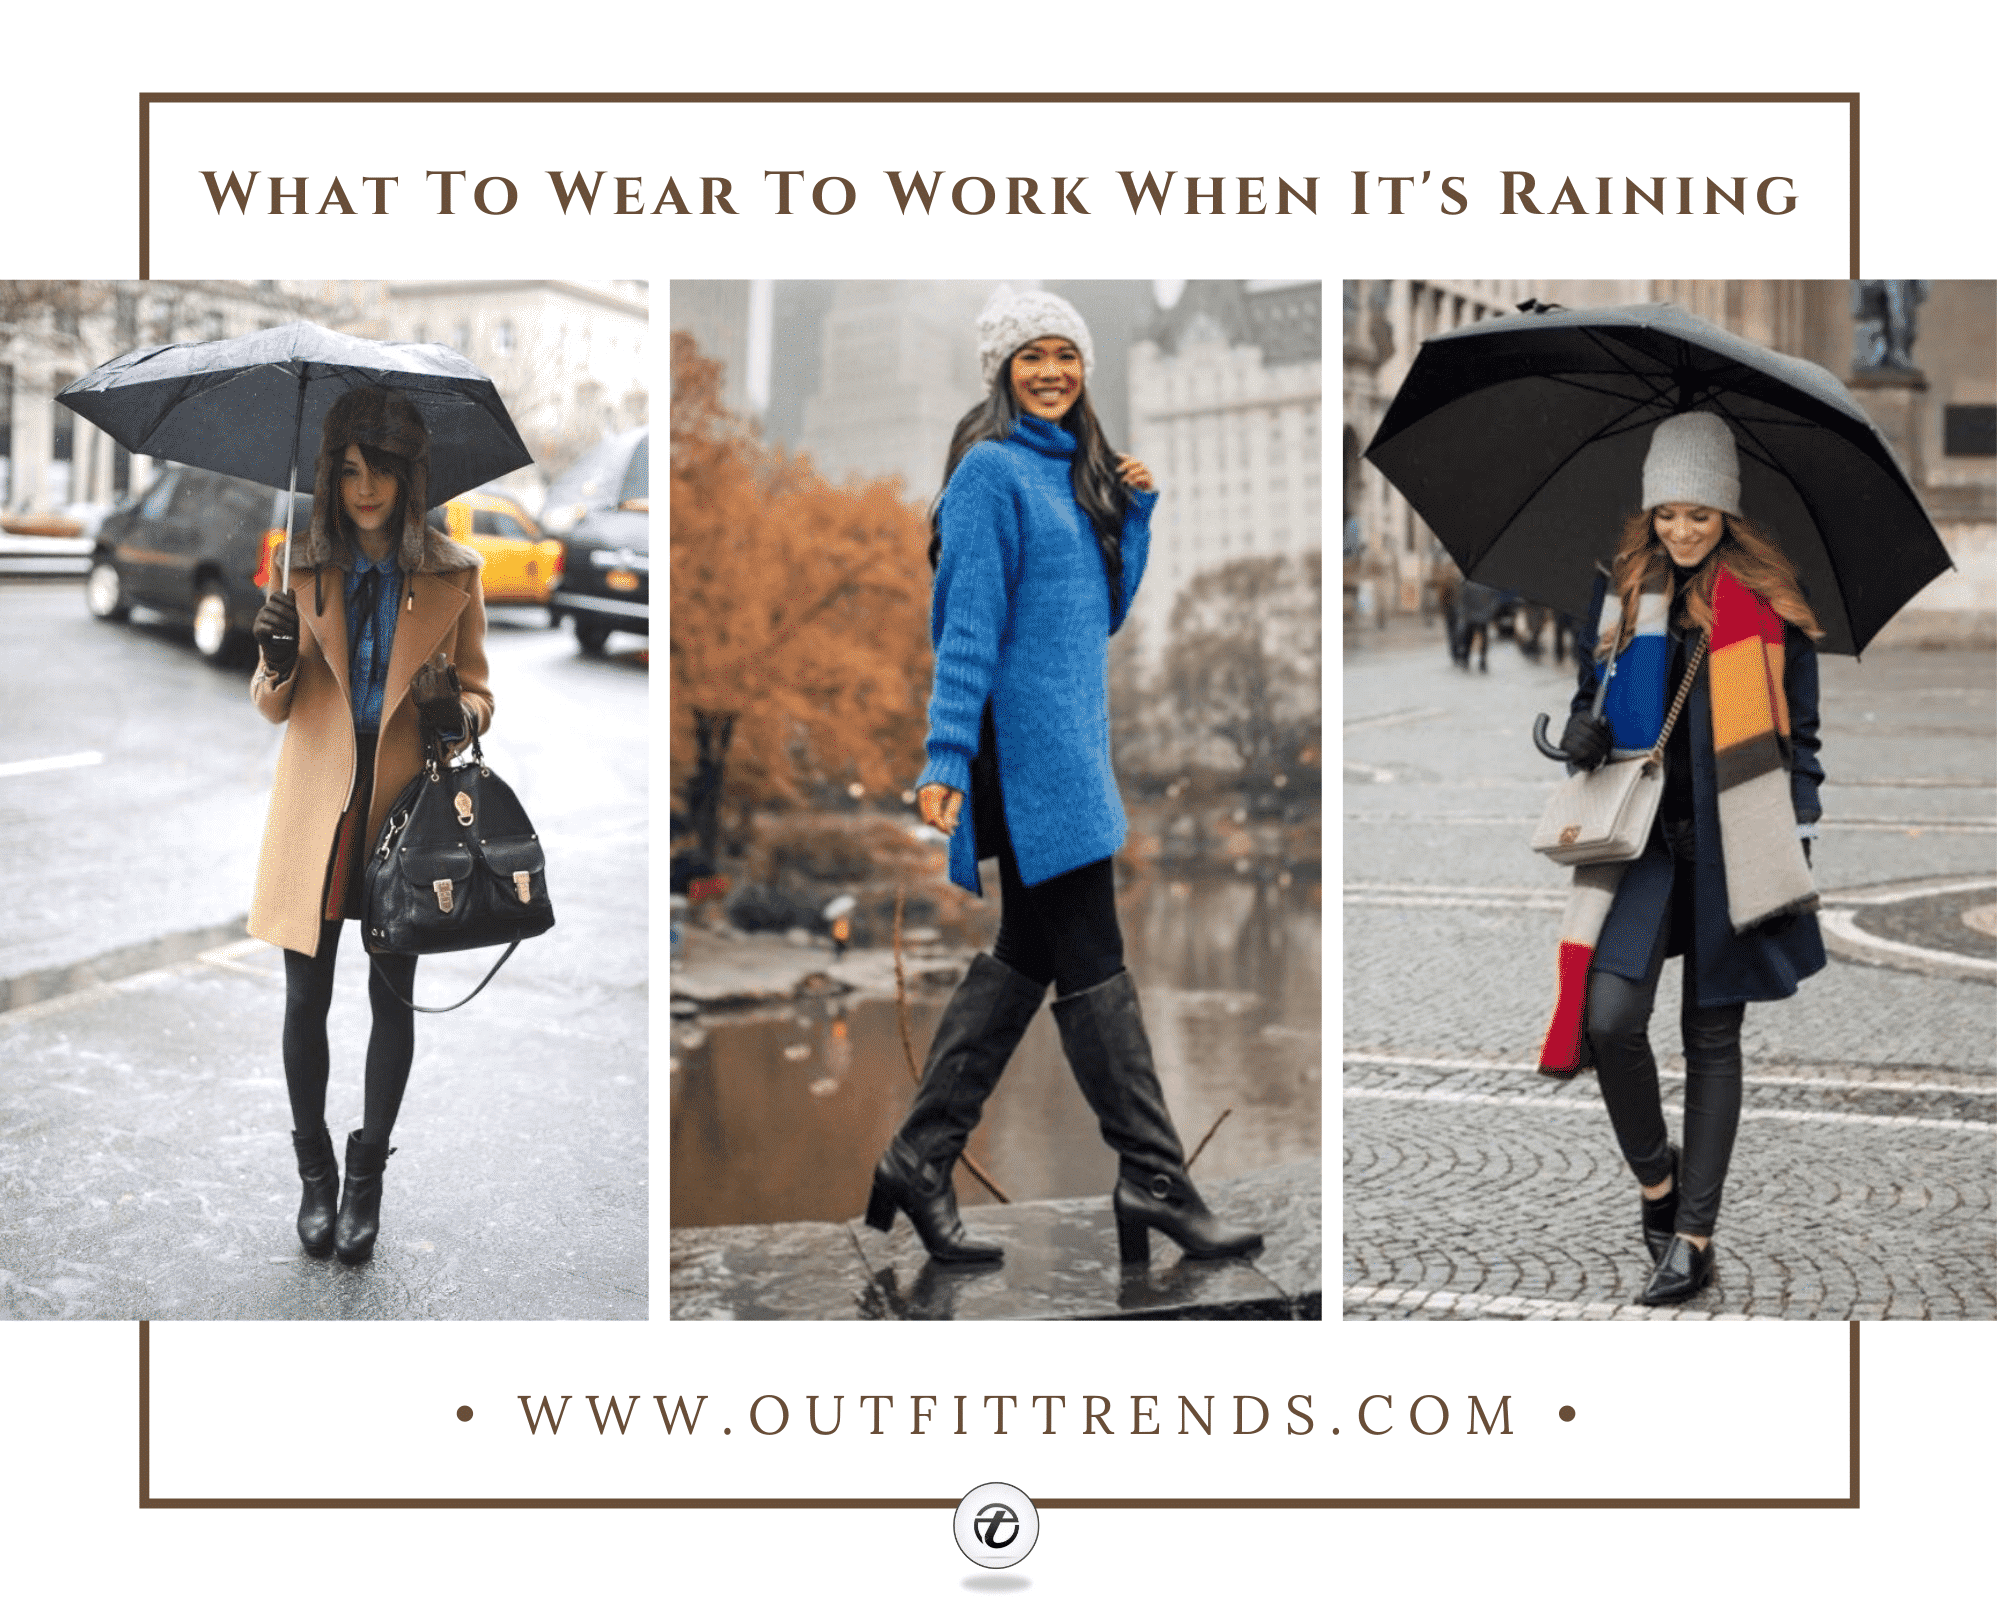 22 Outfit Ideas on What to Wear to Work On Rainy Days